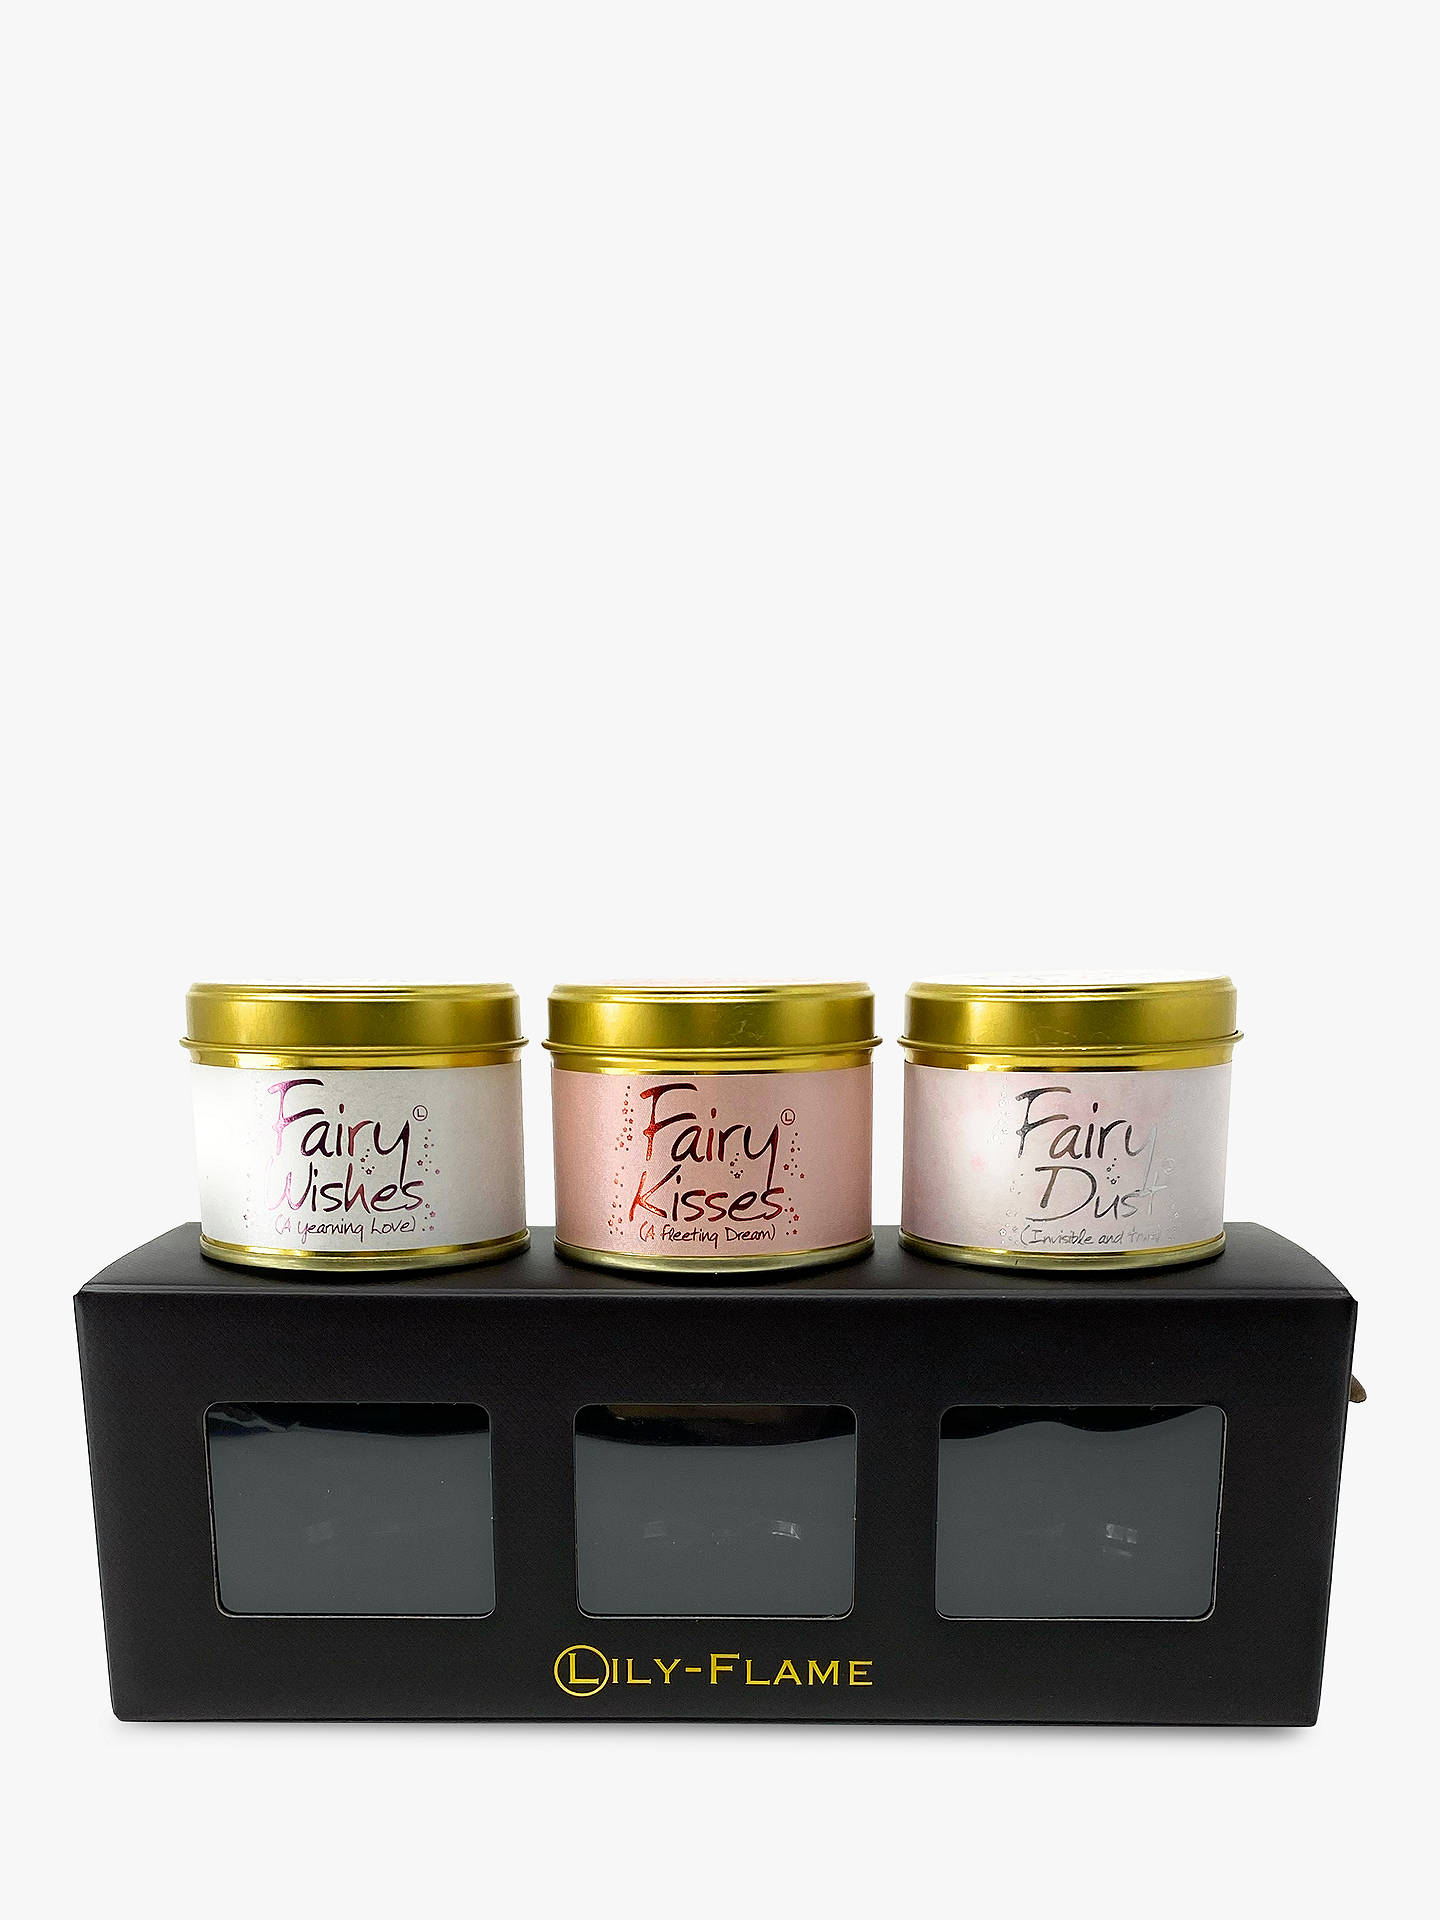 Buy Lily-flame 'Fairy' Mini Tin Scented Gift Set Online at johnlewis.com